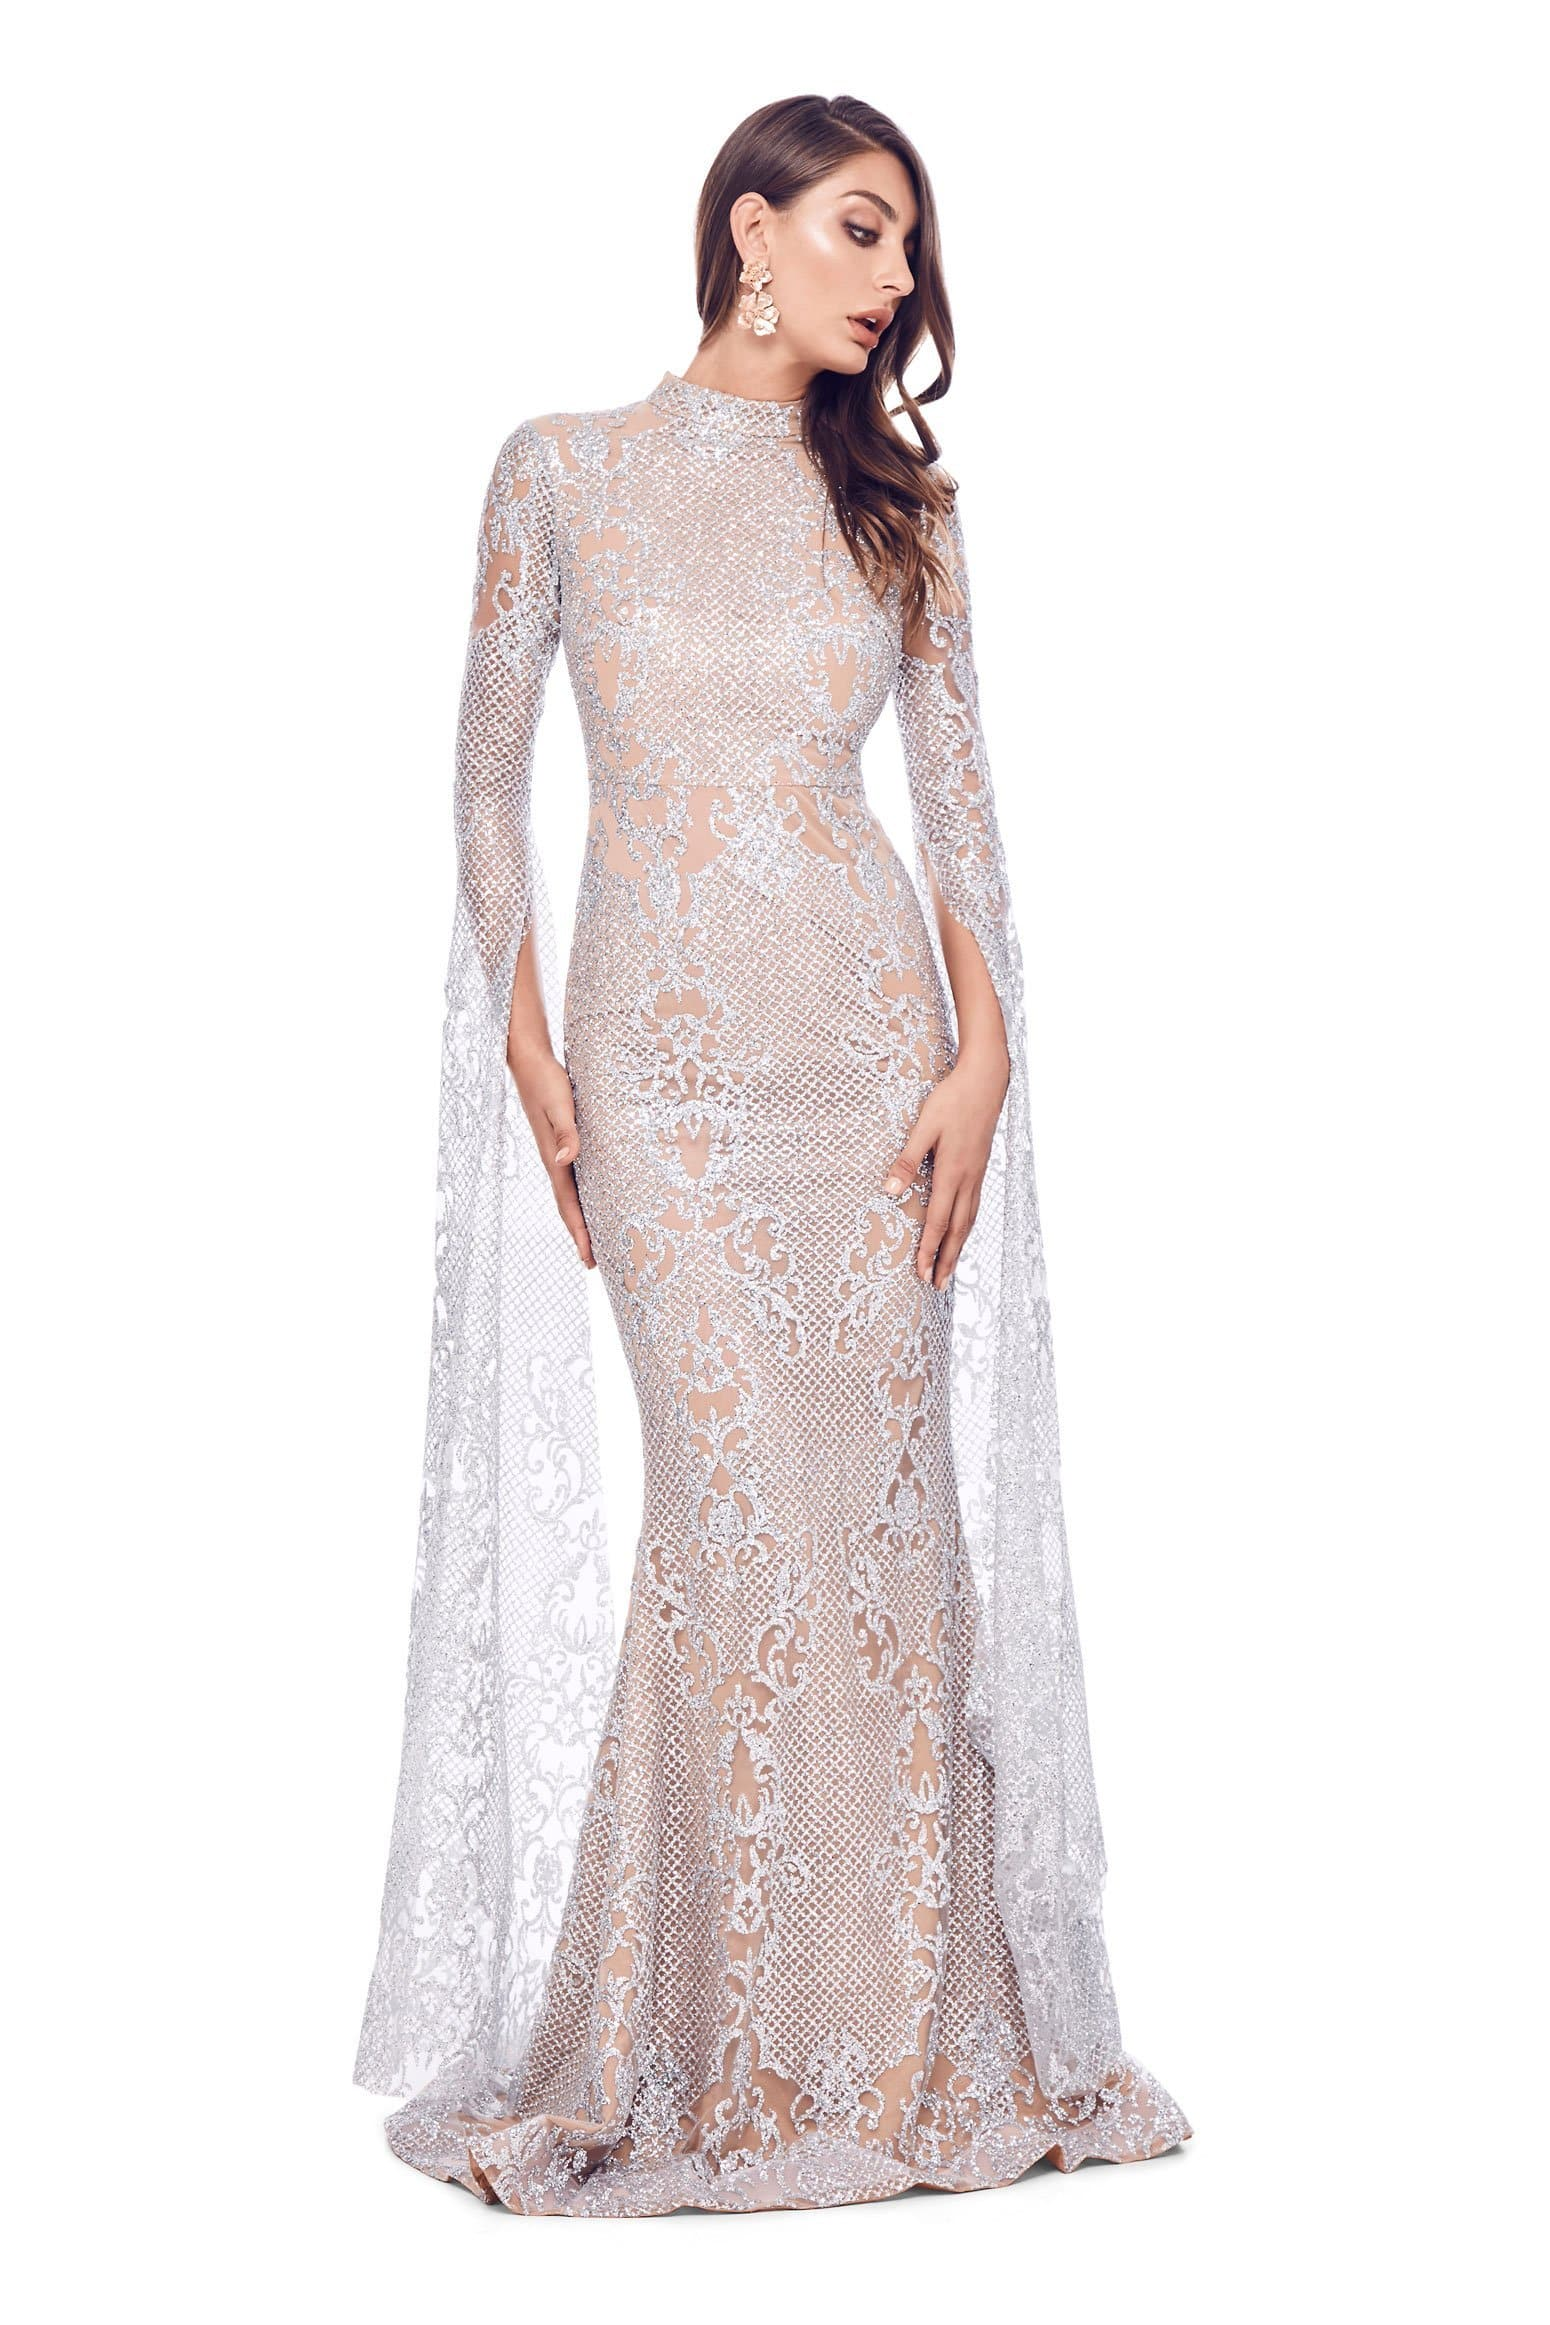 Victoria Sparkling Gown - Silver Glitter Cape Sleeve Mermaid Dress ...